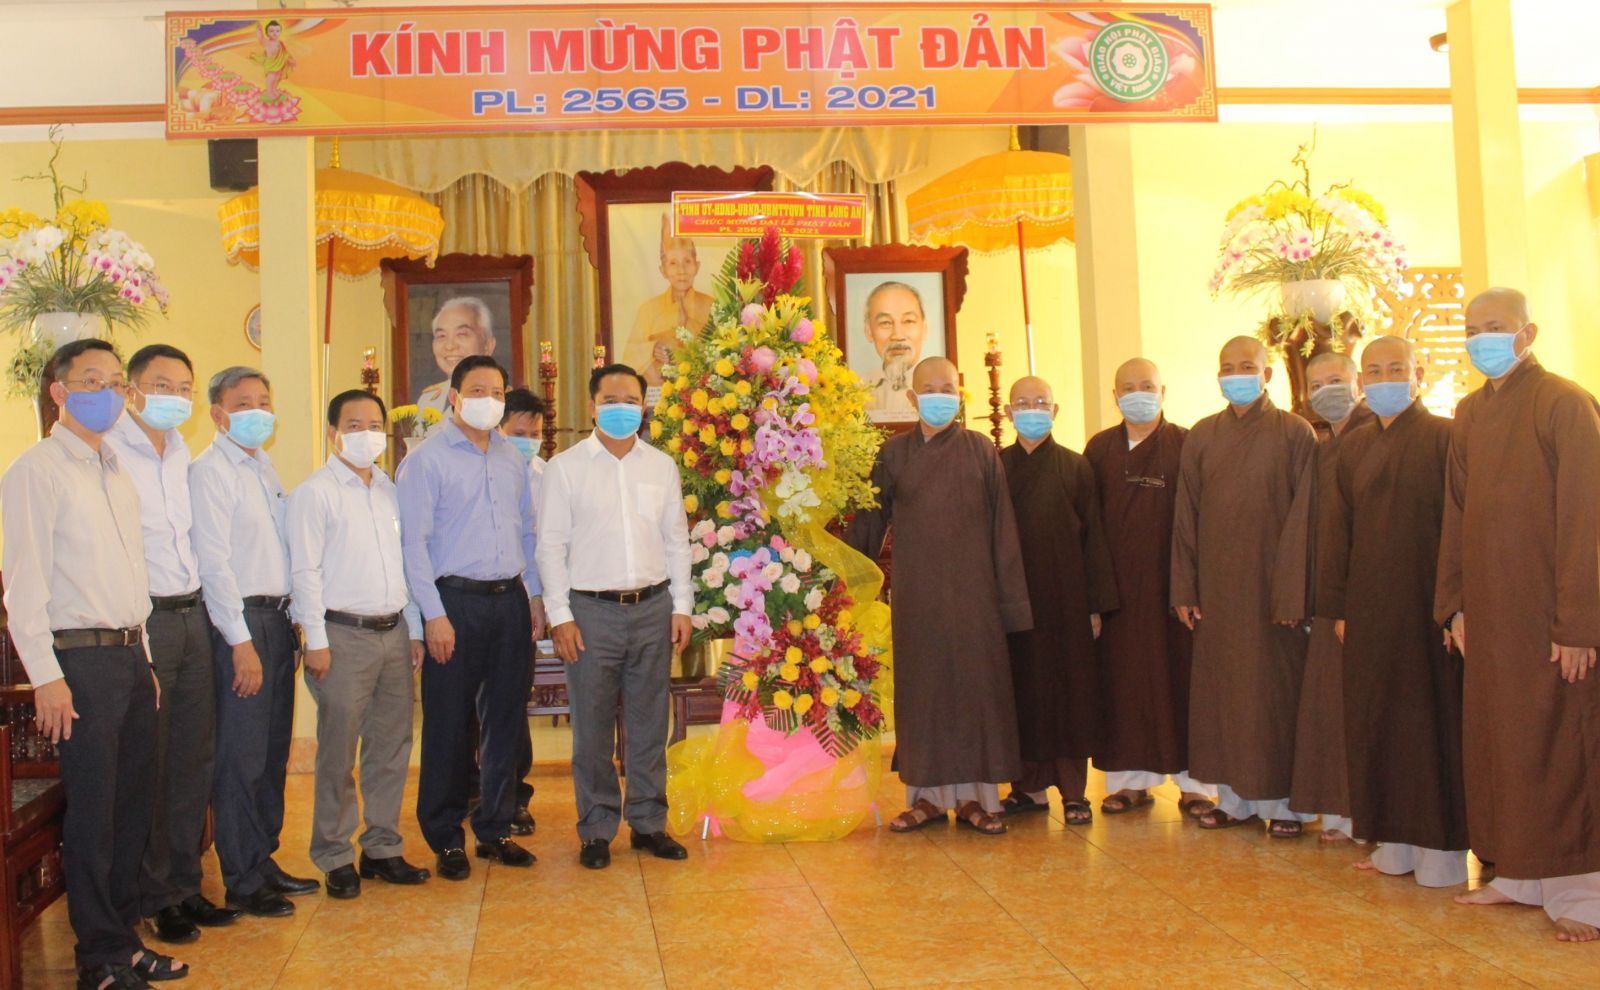 On this occasion, provincial leaders presents flowers to congratulate the Executive Committee of Vietnam Buddhist Sangha of Long An province